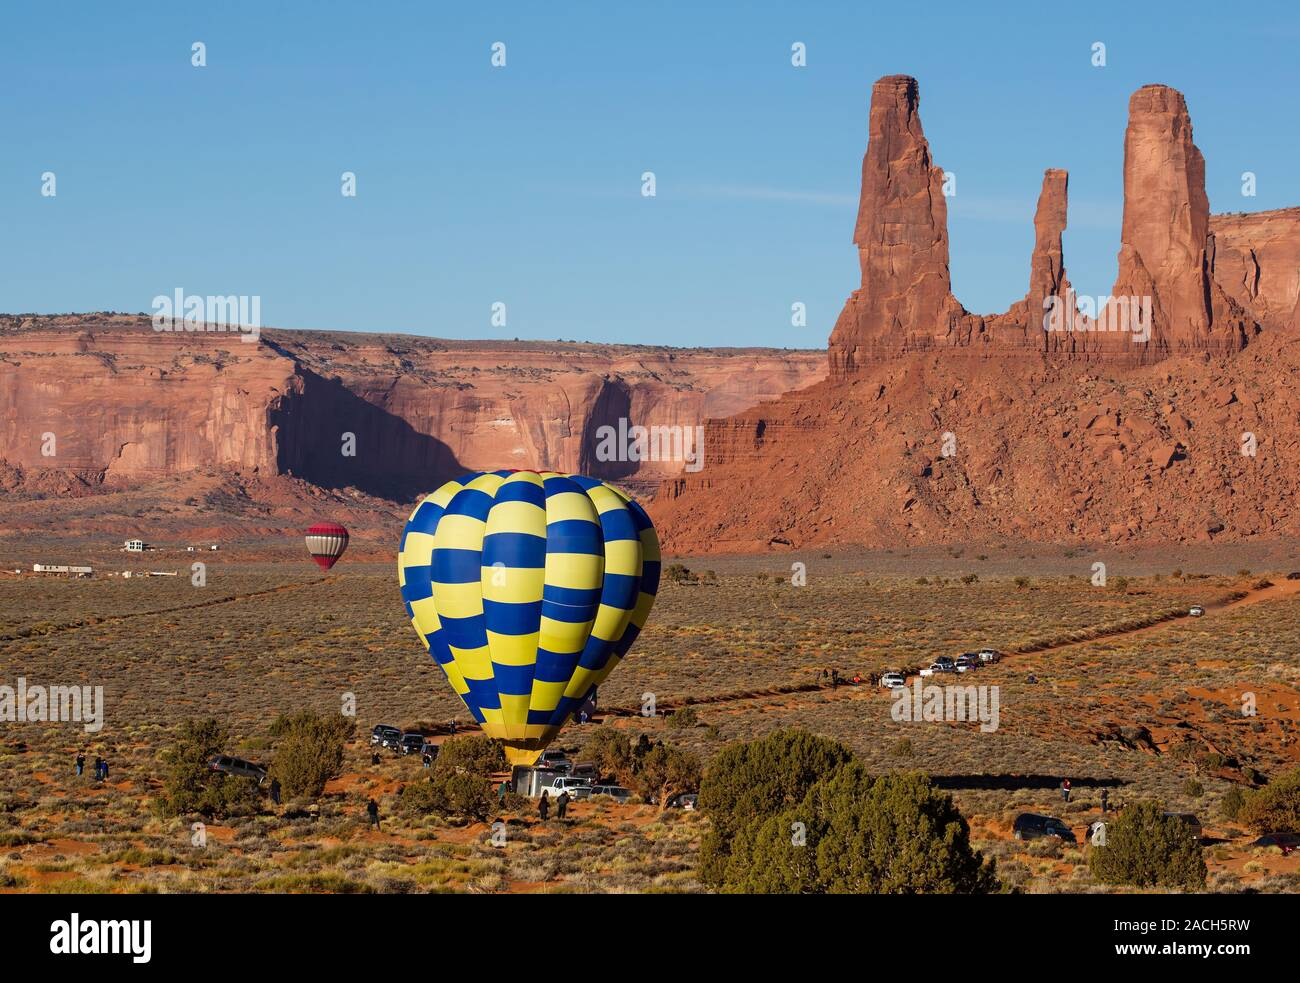 A team prepares for launch in the Monument Valley Navajo Tribal Park in Arizona.  In the background is the rock formation called the Three Sisters at Stock Photo